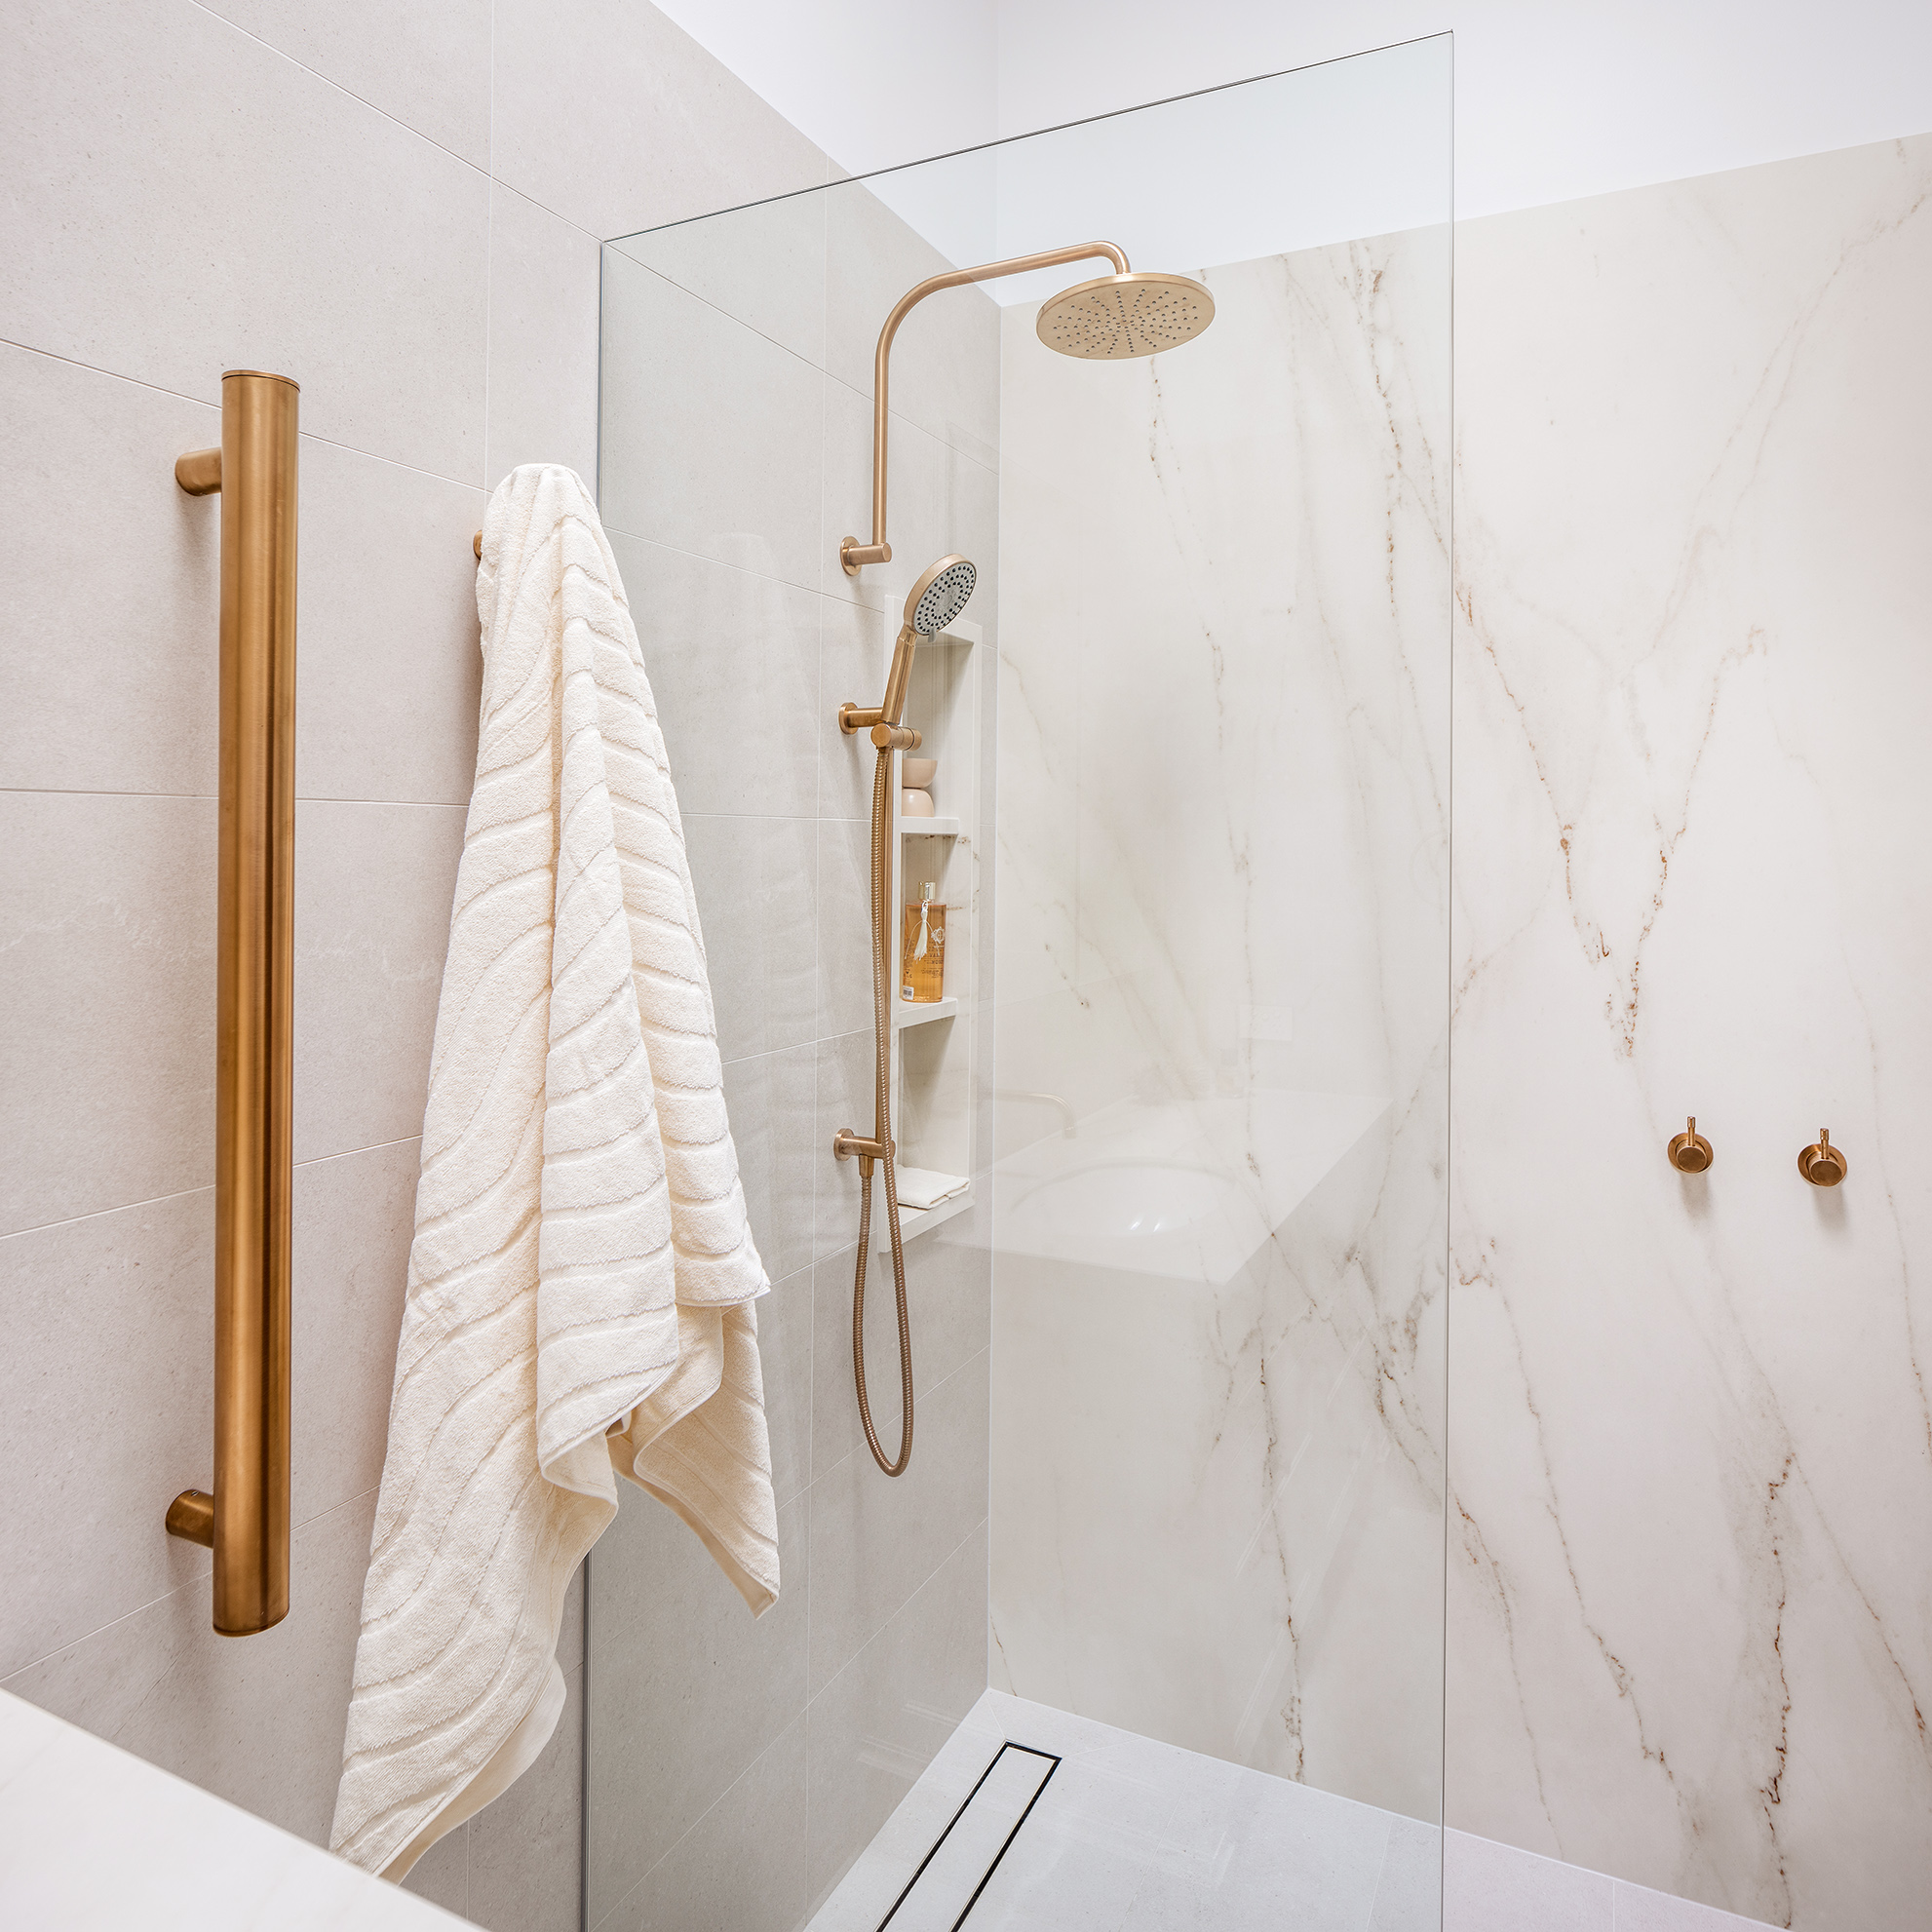 Mount Lawley Traditional Skylit Ensuite - Heated vertical towel rails and shower in brass